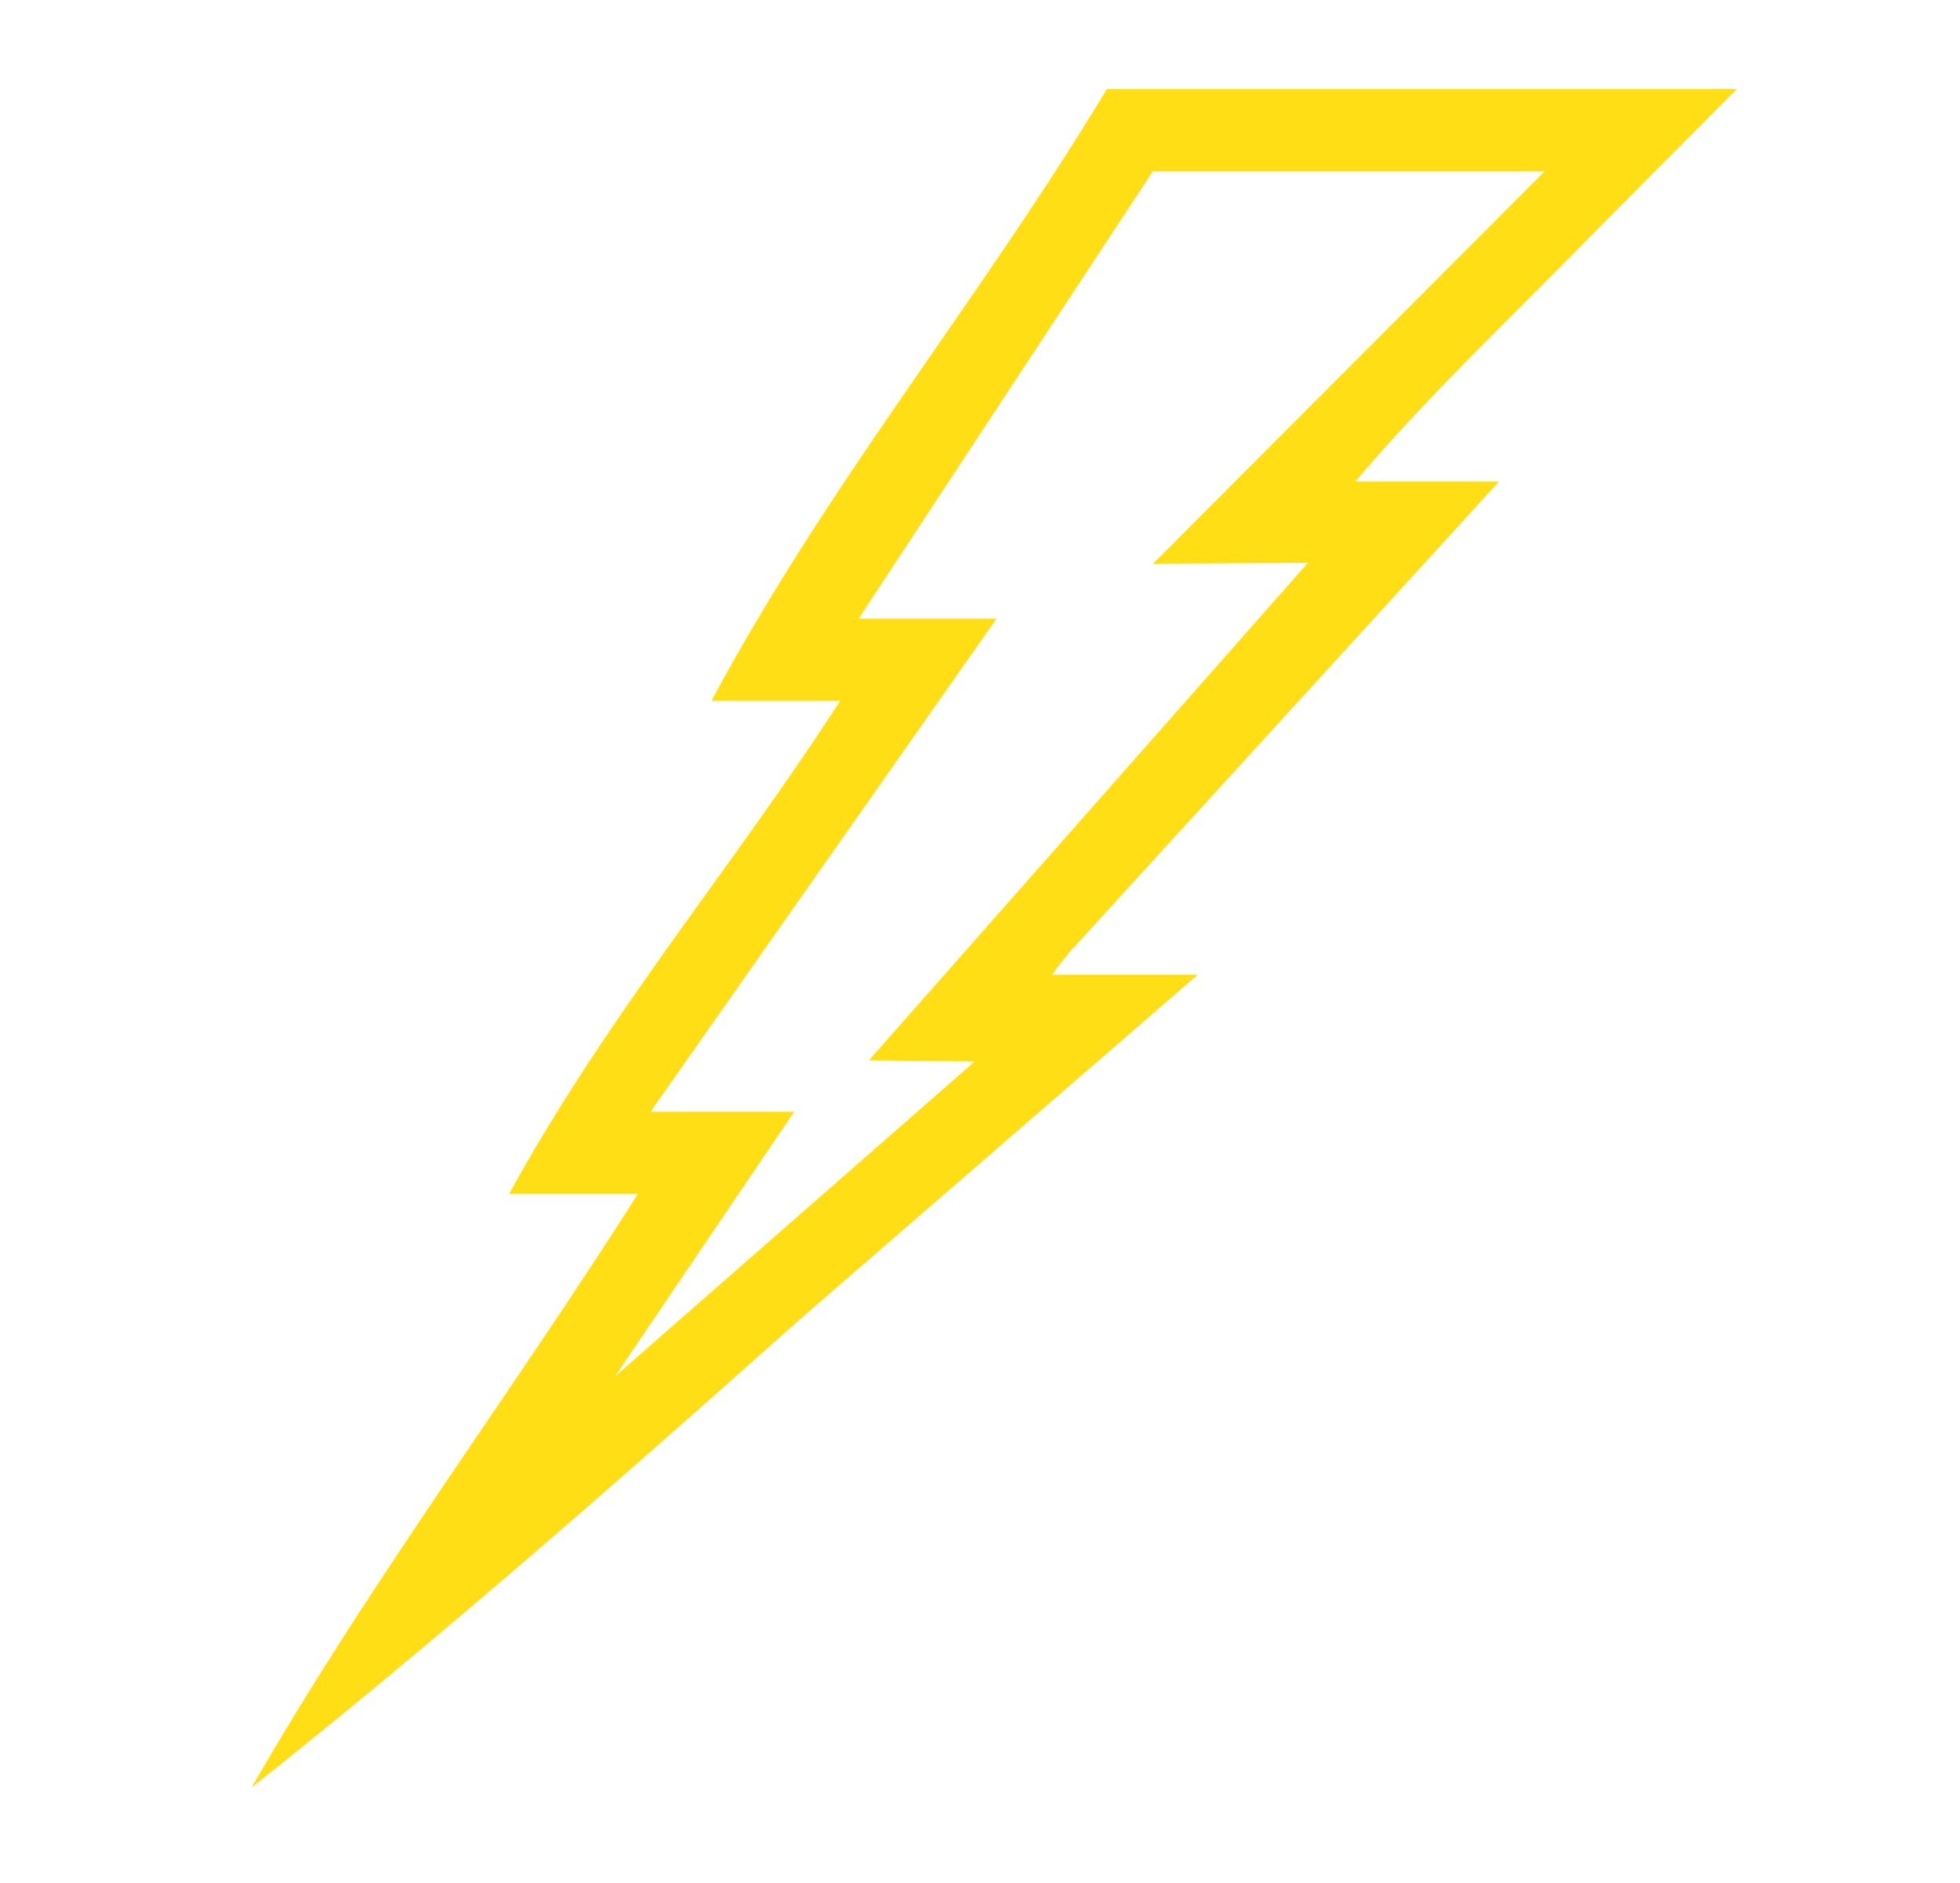 Lightning Bolt Yellow Lightning Electric 1300474 Png Images Pngio